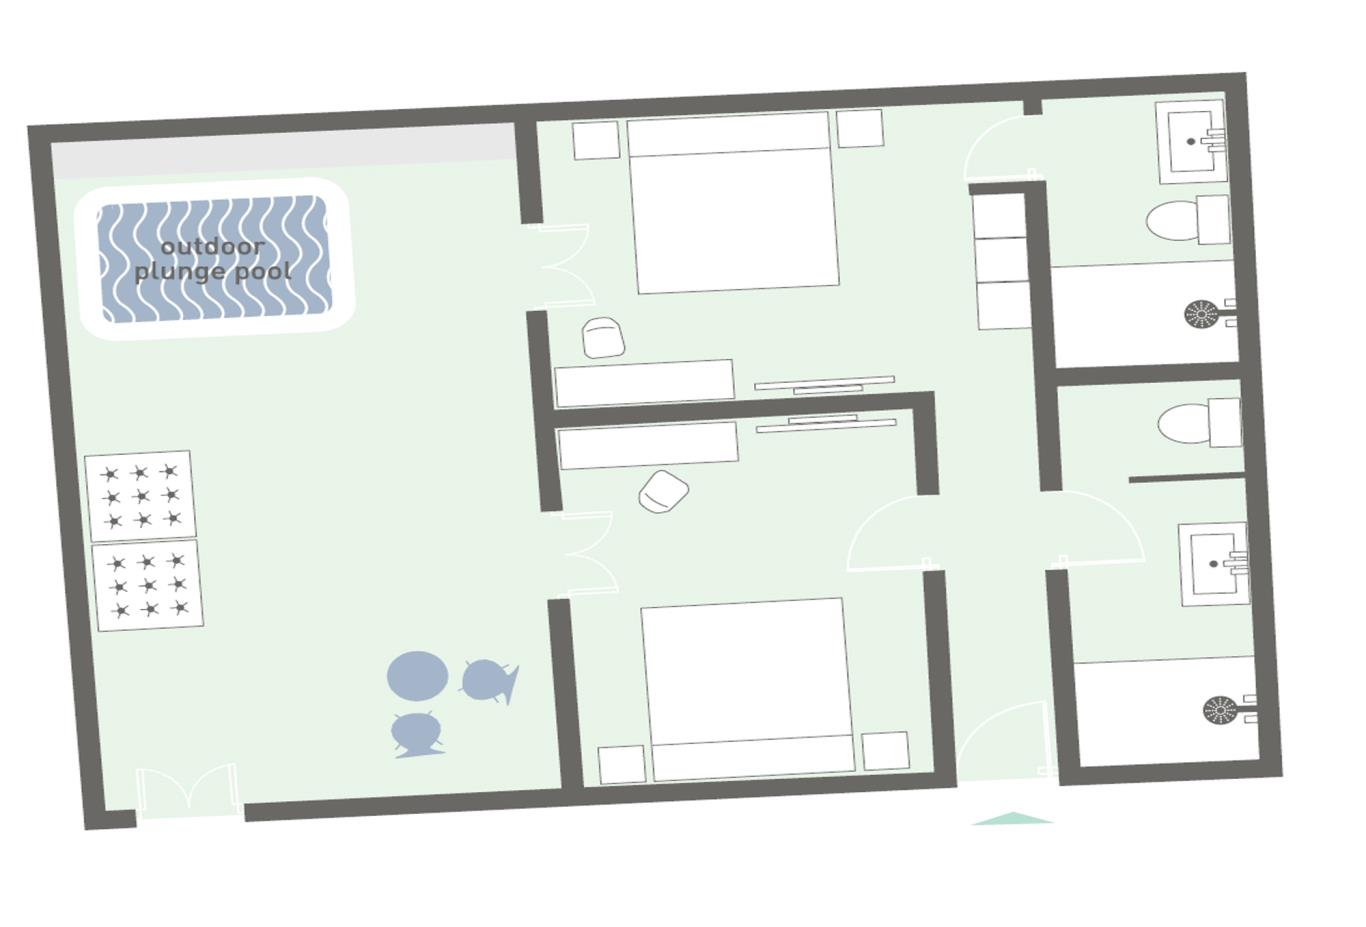 Family-suite-with-plunge-poolfloorplan example